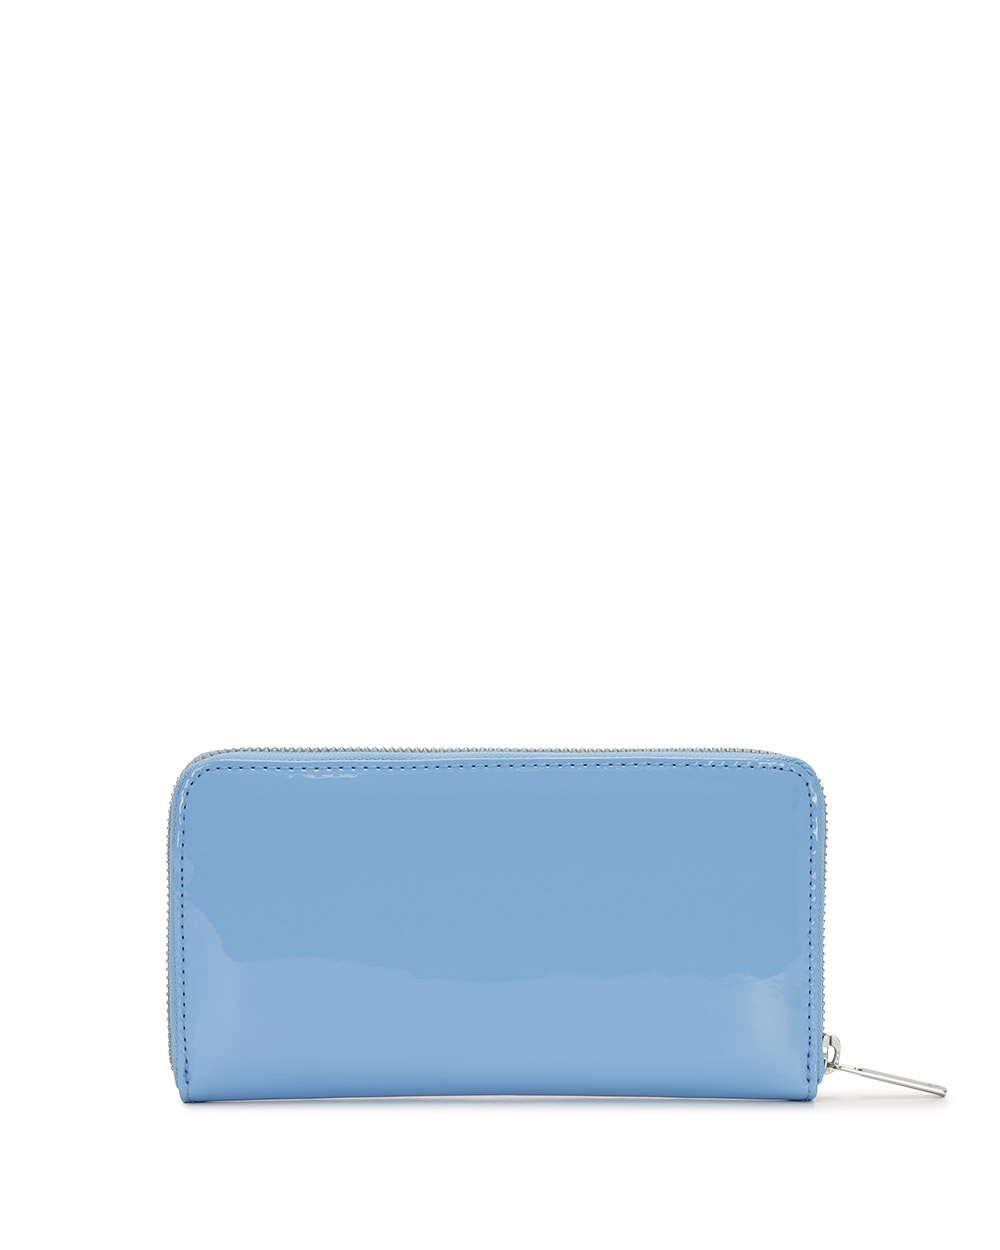 Patent Leather Long Wallet 2